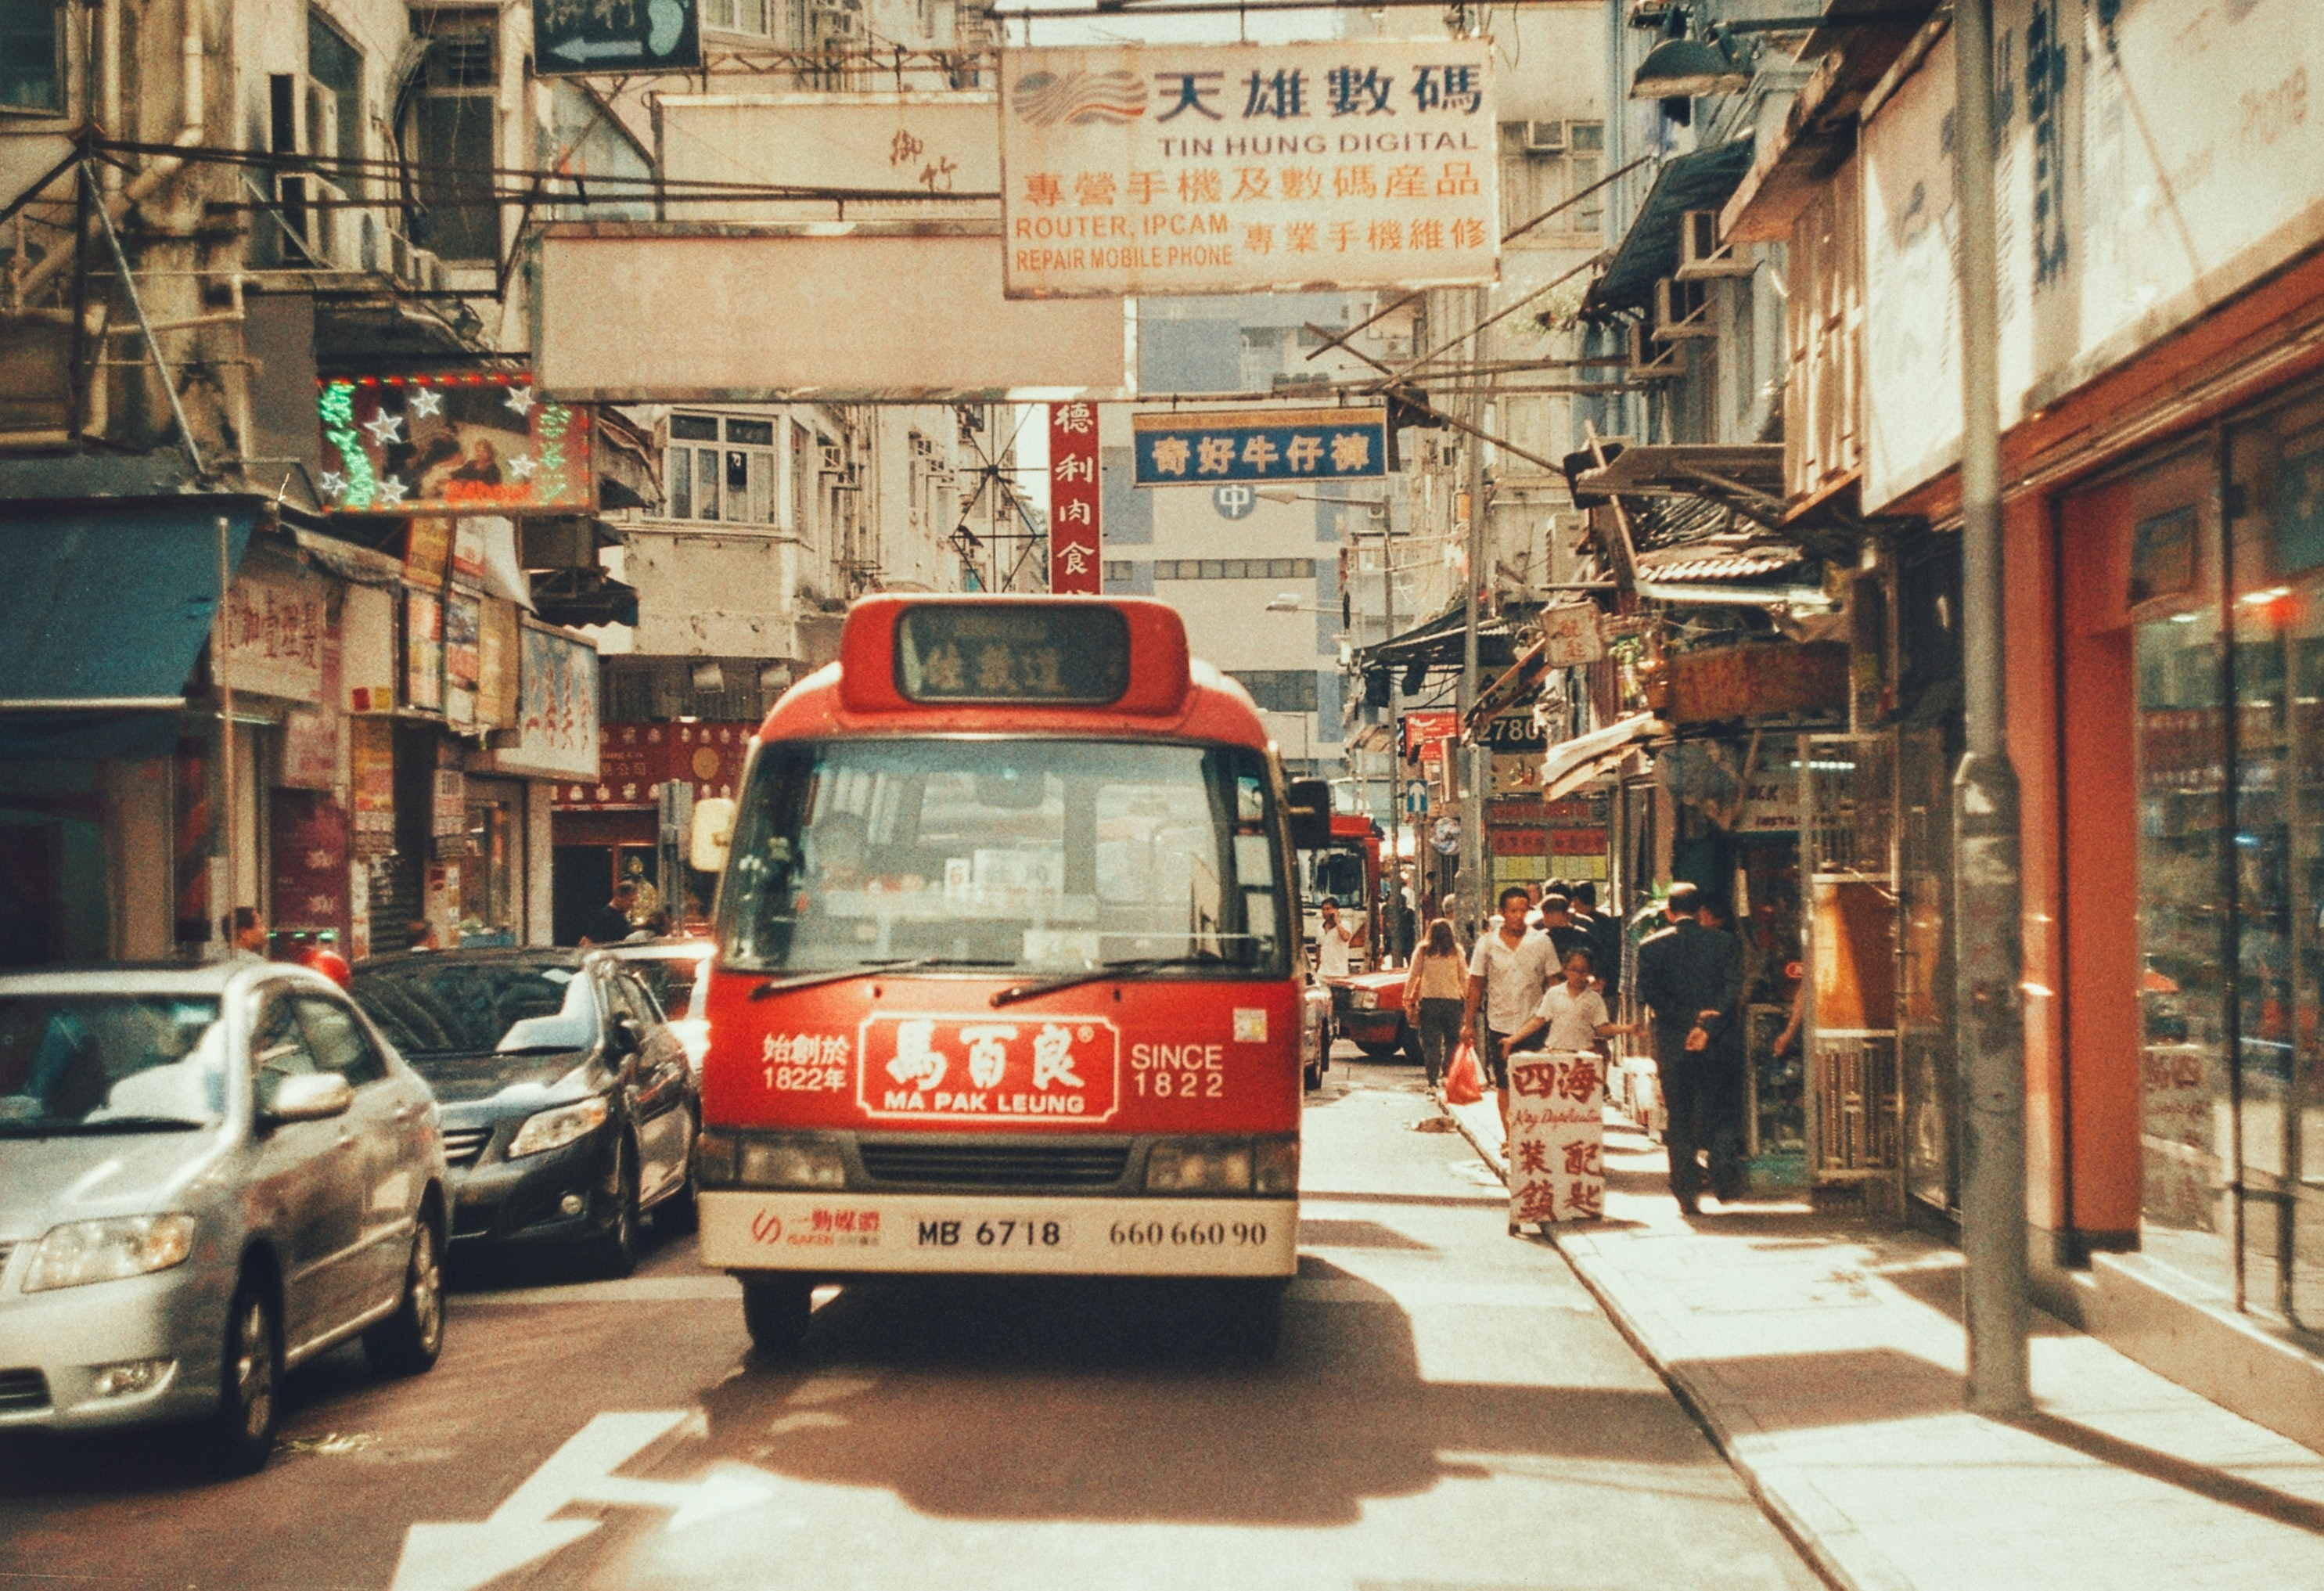 red bus near two cars during daytime